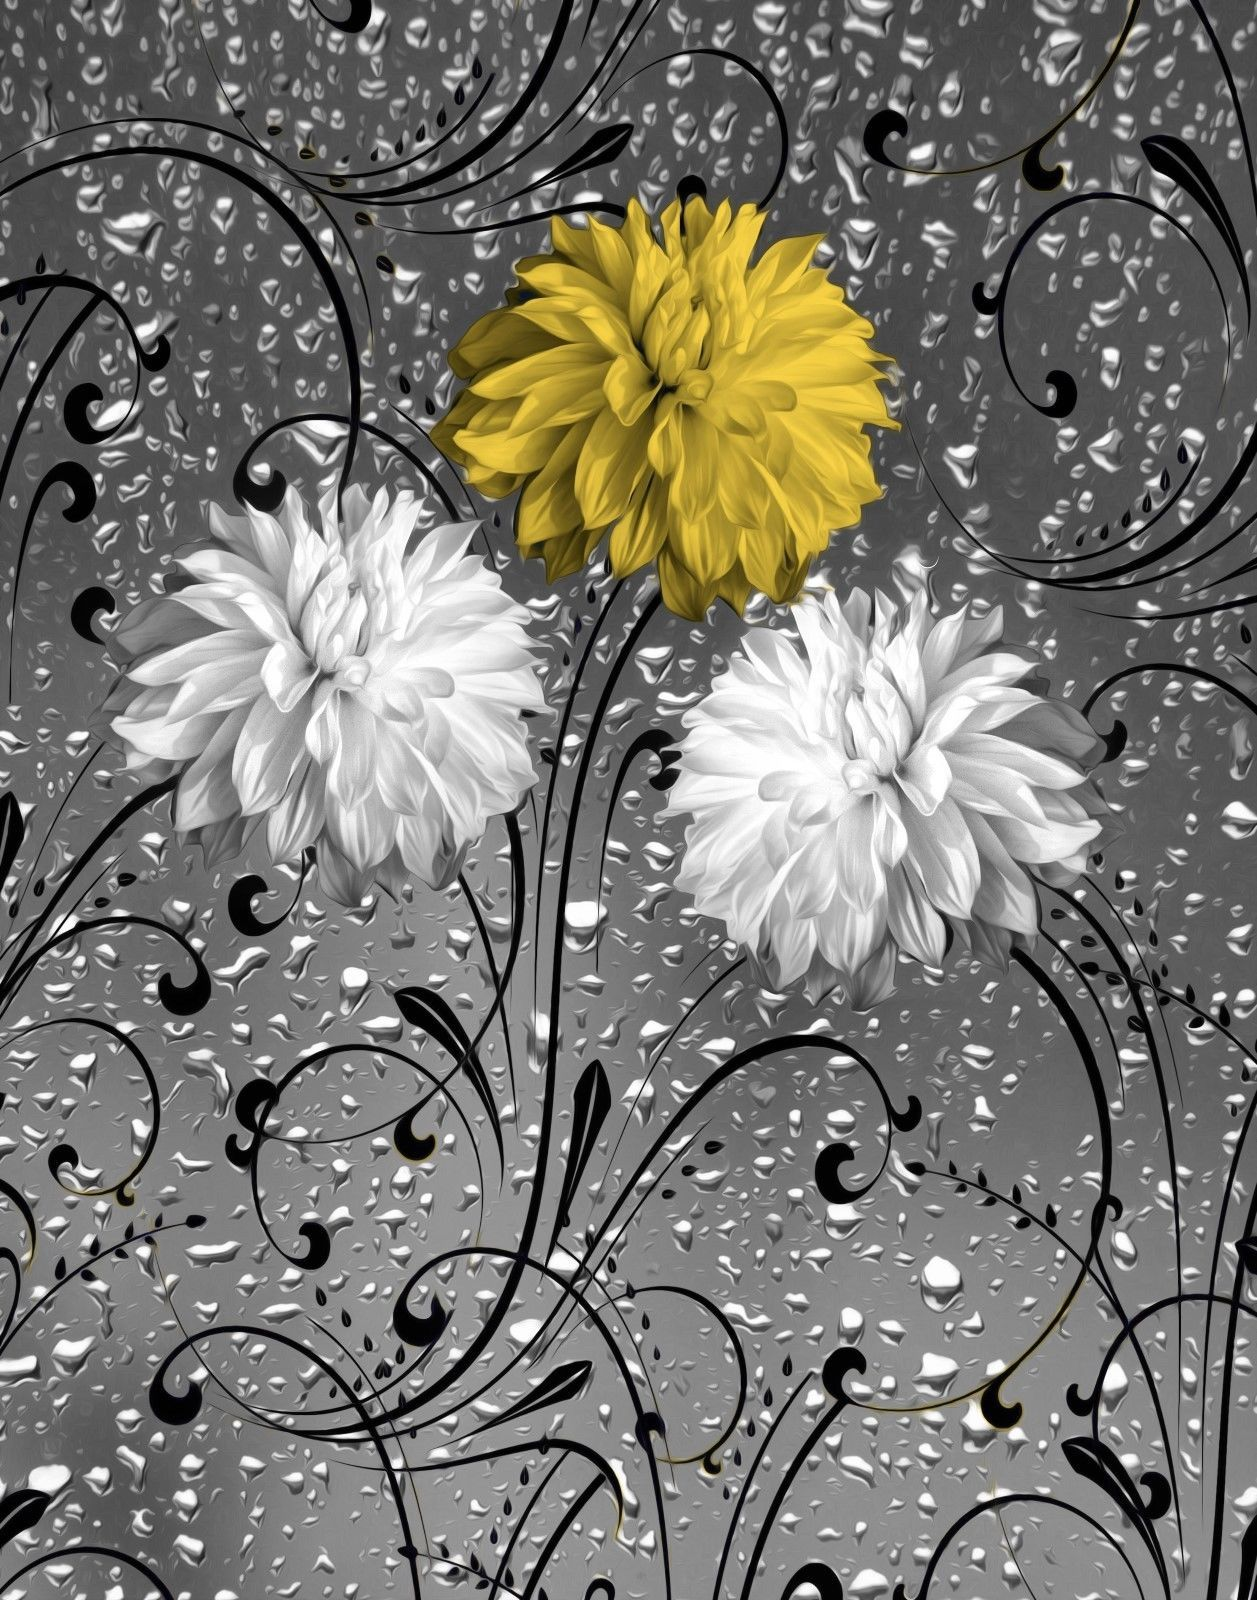 Yellow Gray Bathroom Home Decor Floral Raindrops Wall Art Matted